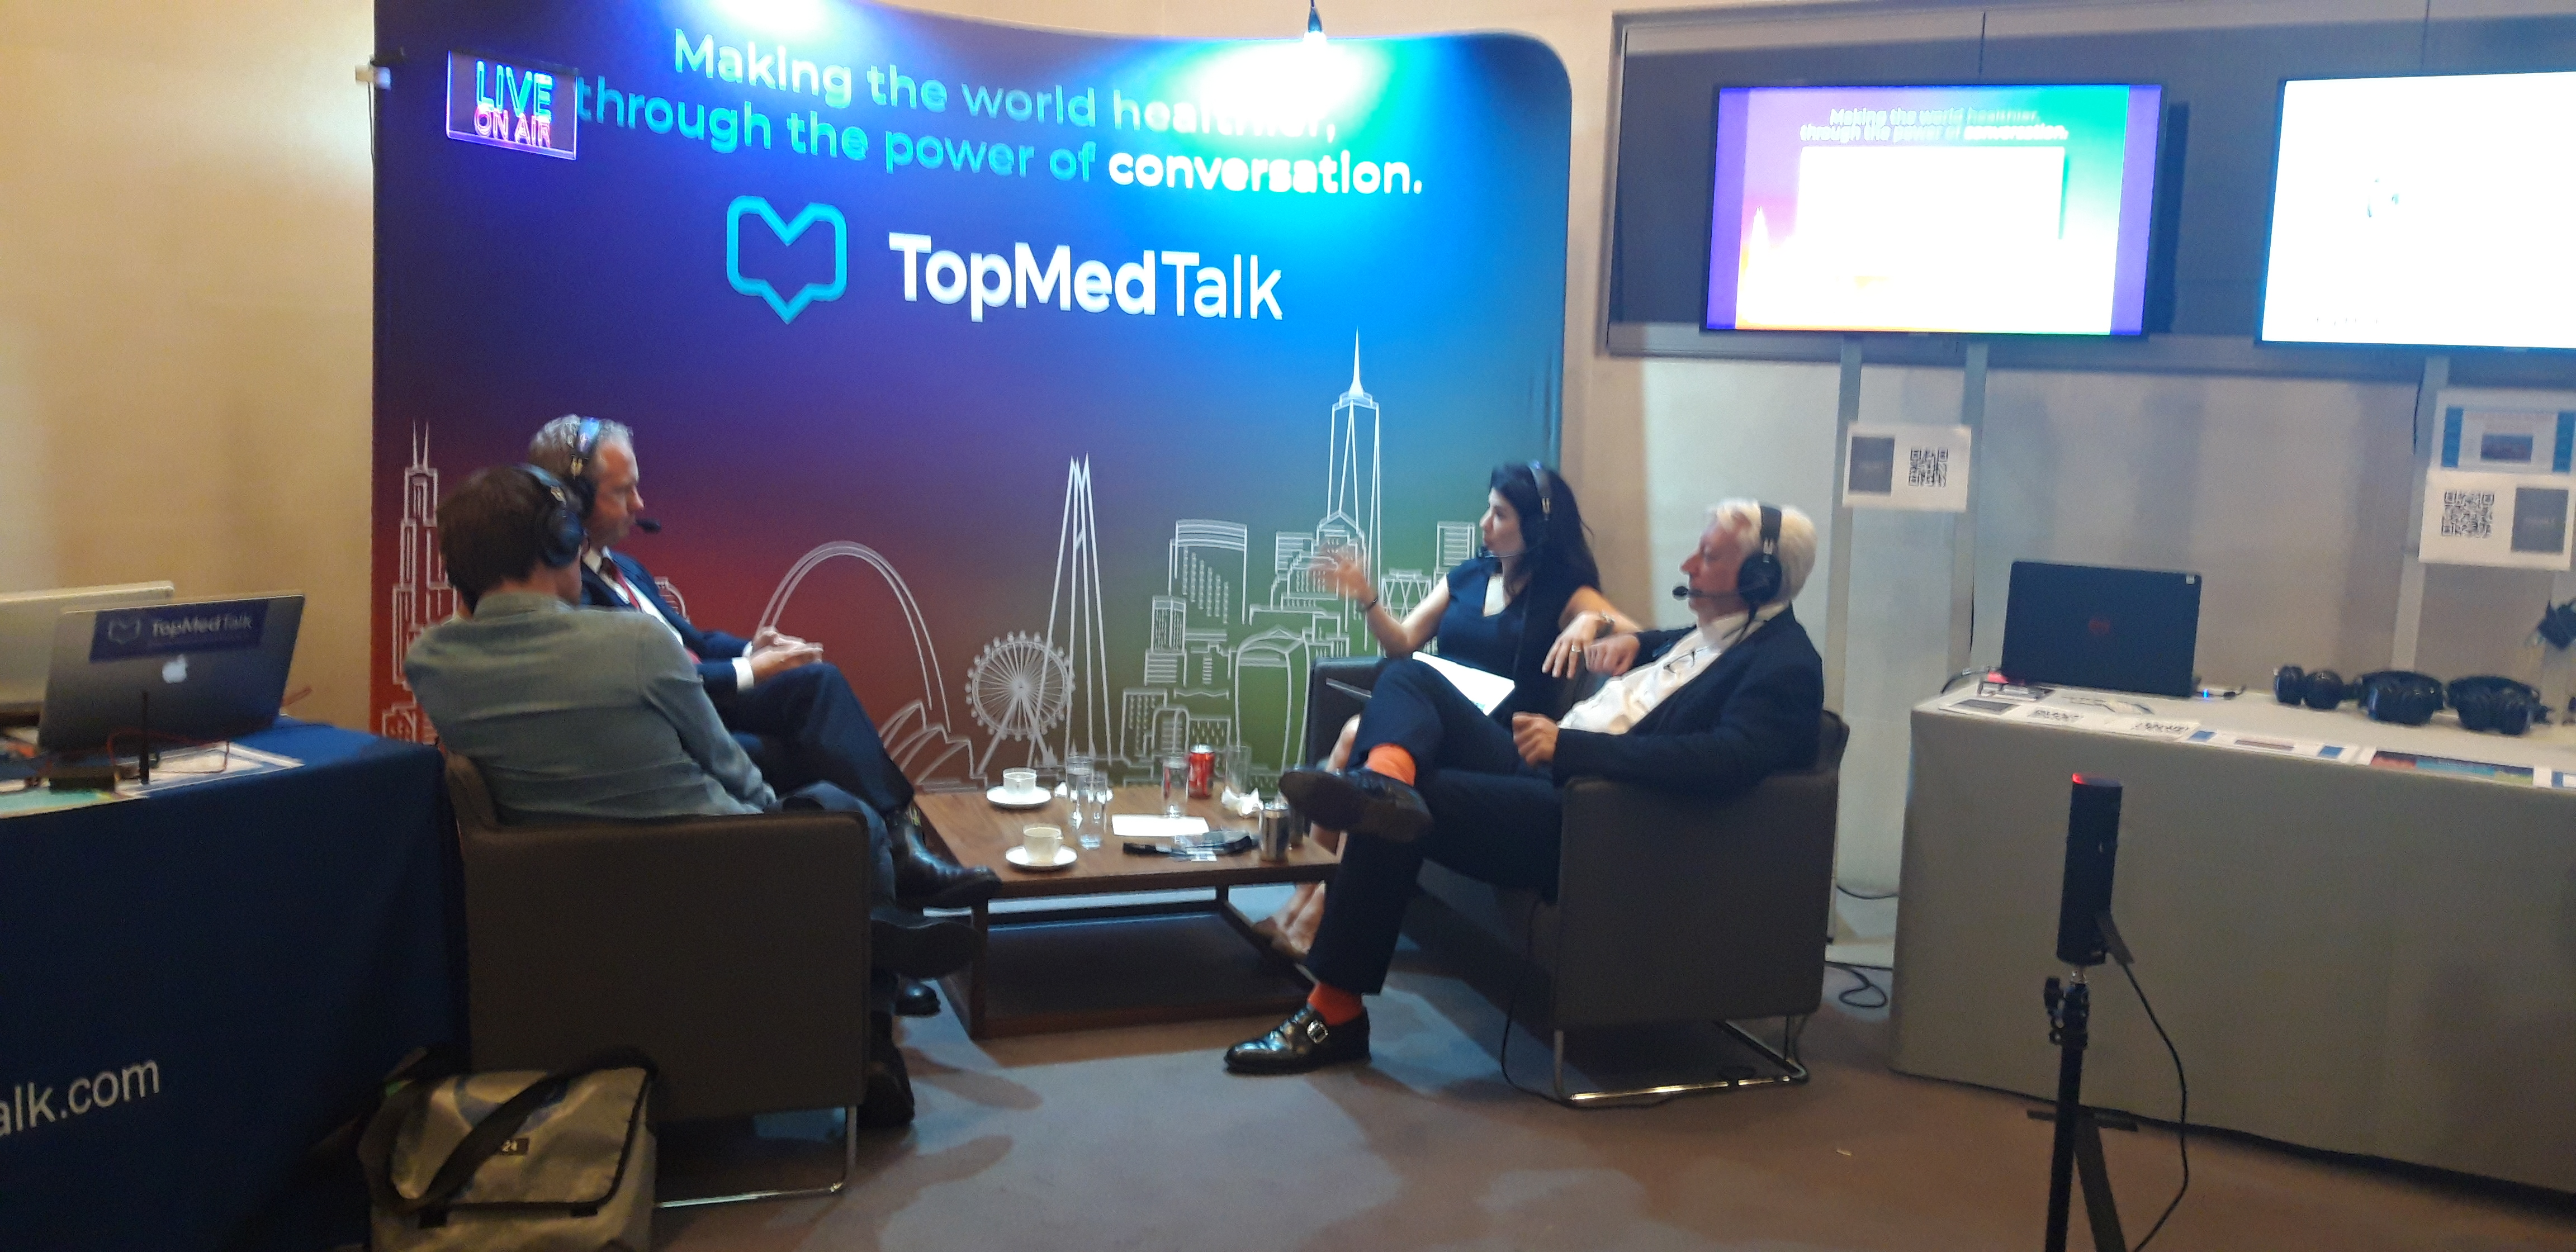 TopMedTalk | Daniel Conway and the surgery school